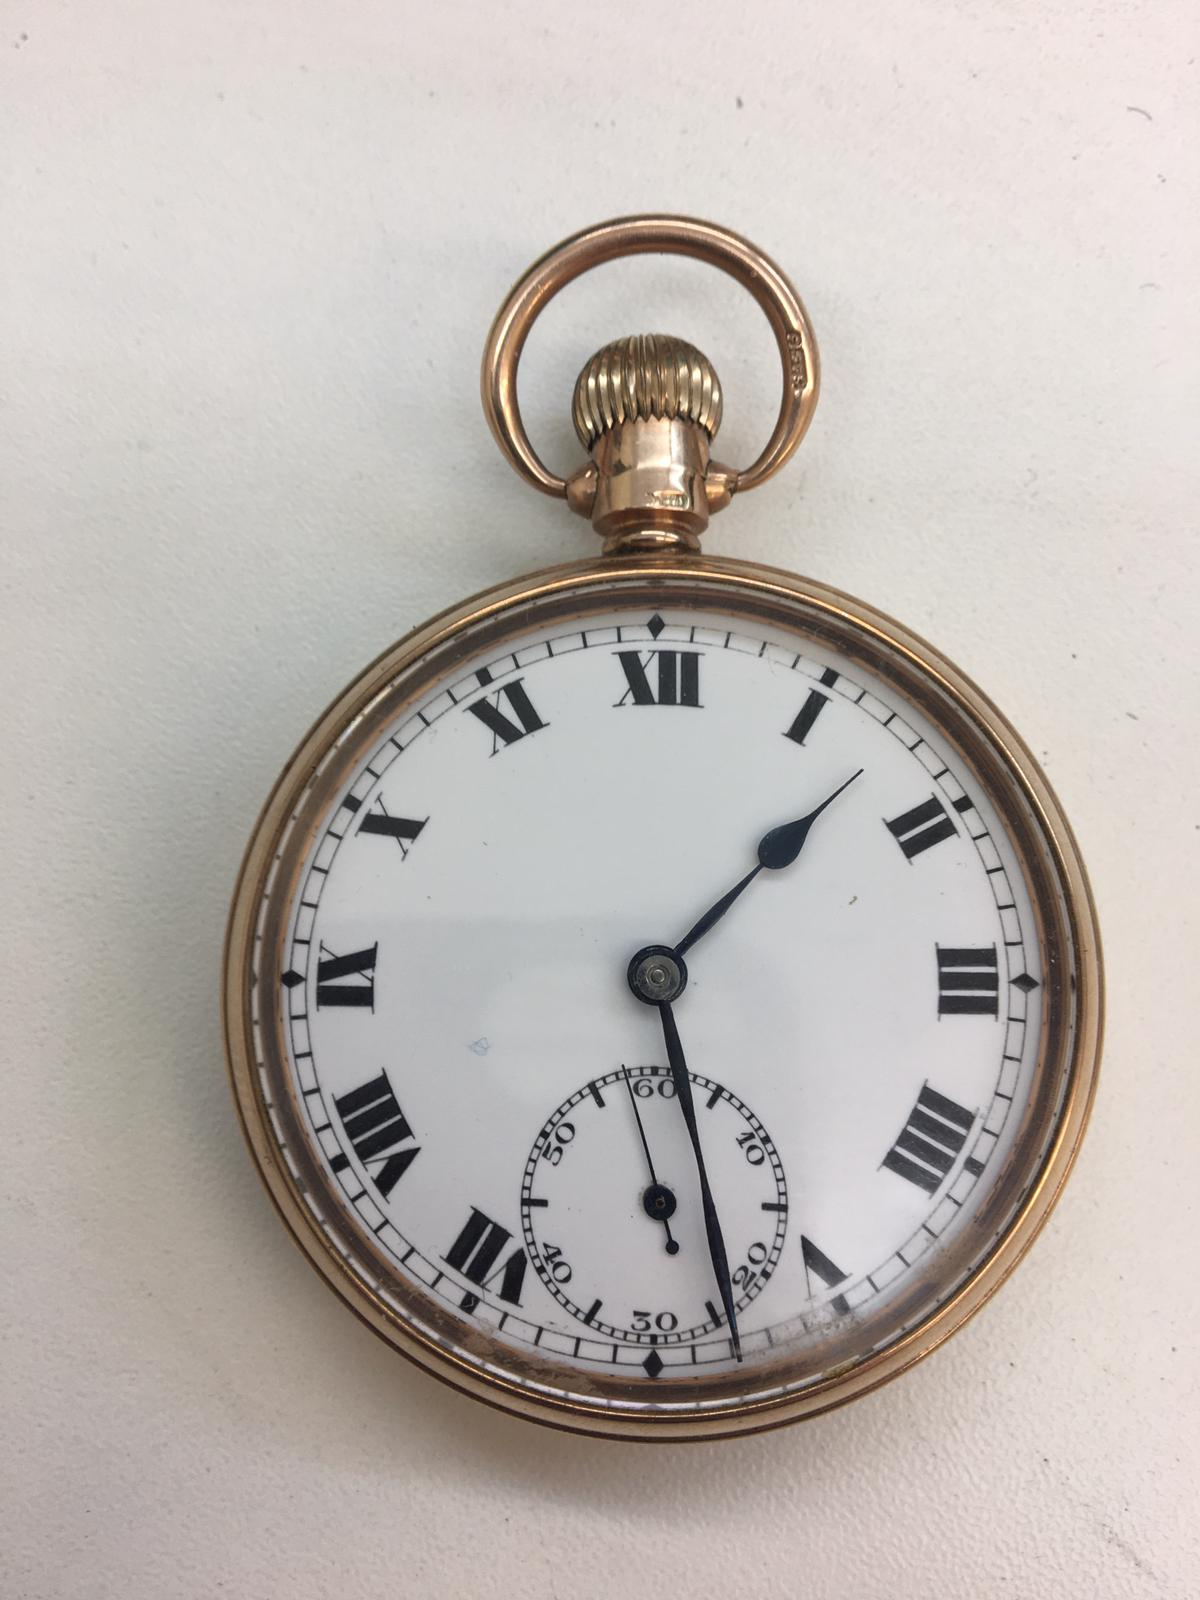 9ct gold pocket watch with gold dust cover full working order, dial clean total weight 71.6g